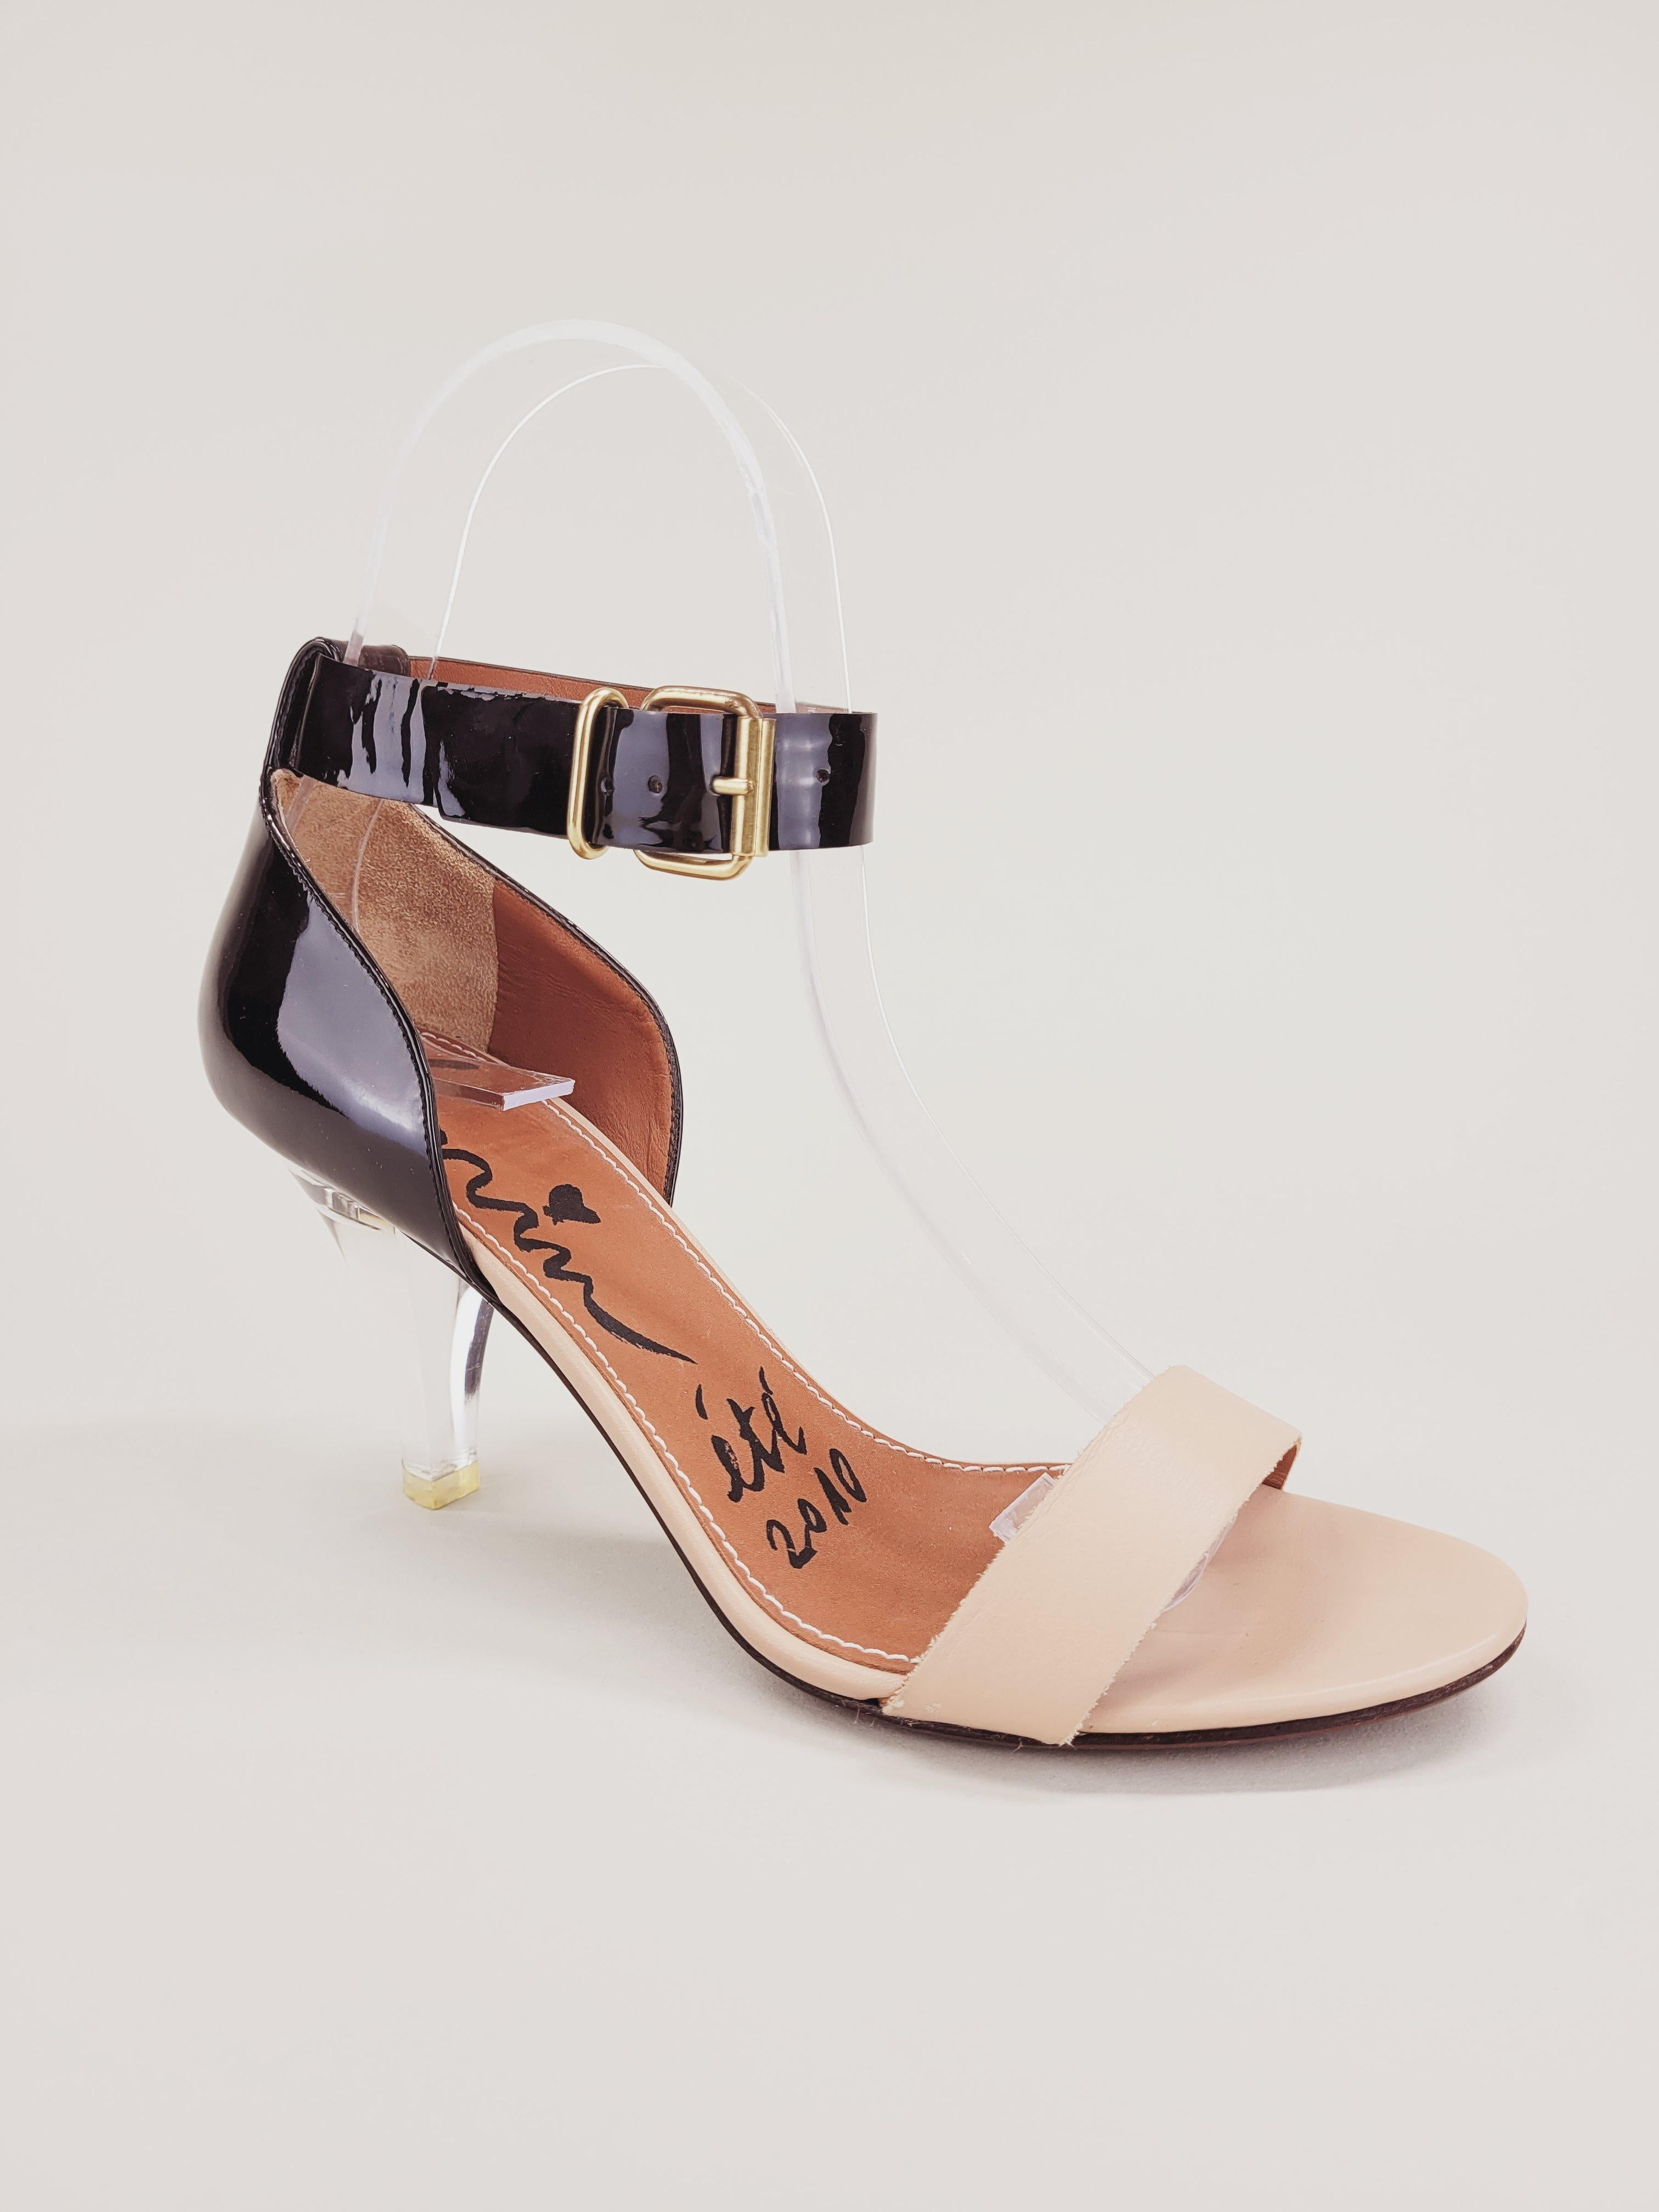 Lanvin Two Toned Lucite Heel Sandals